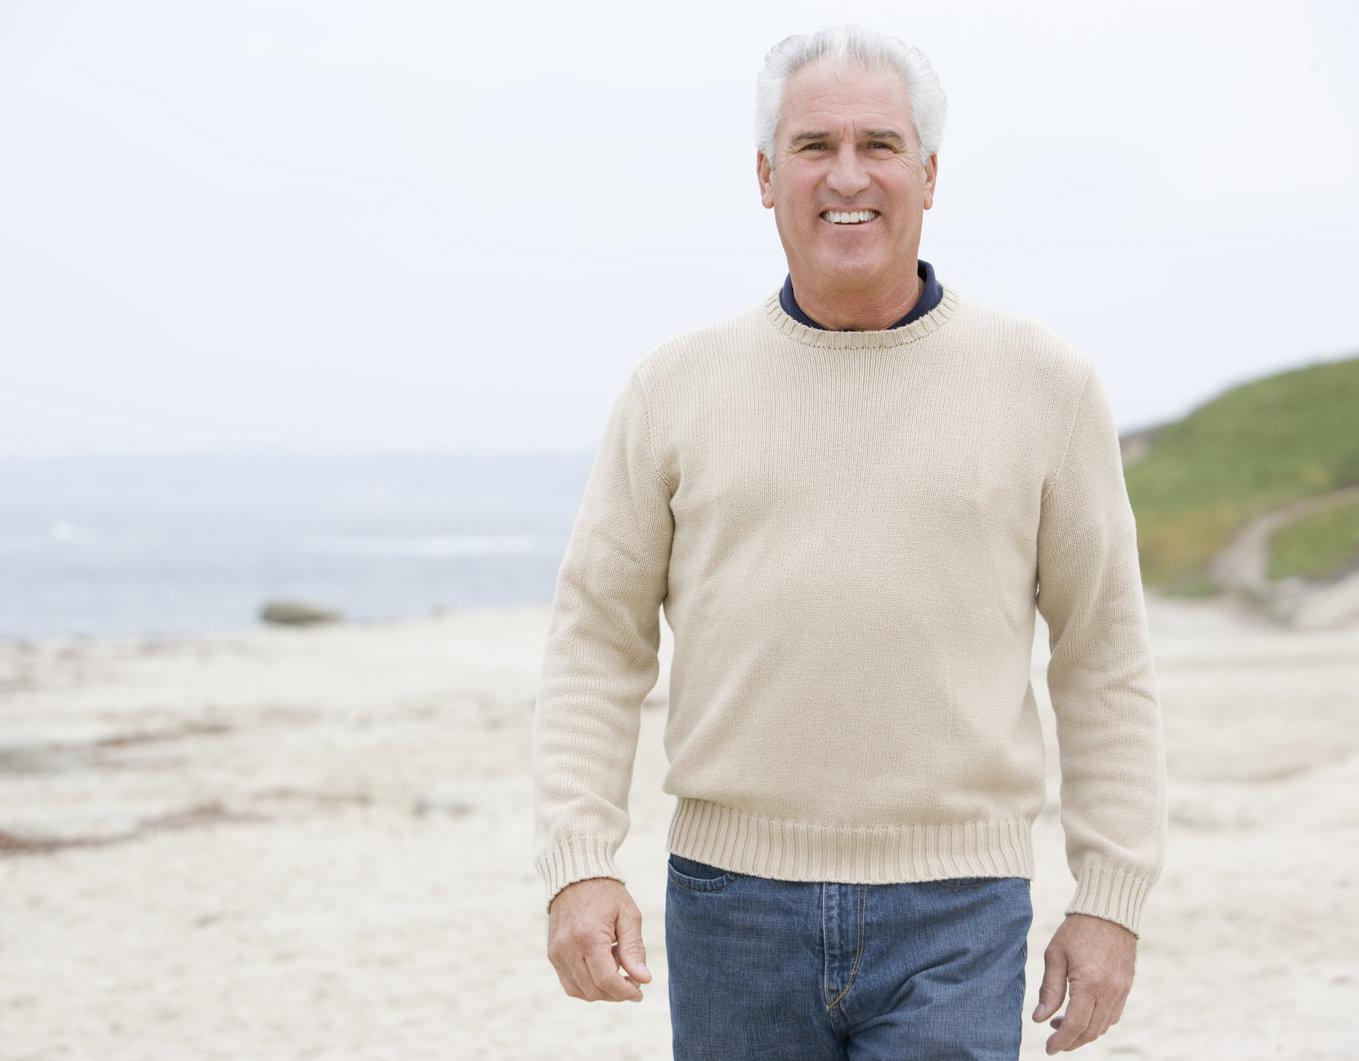 Relaxed and handsome older man walking on the beach in a sweater.